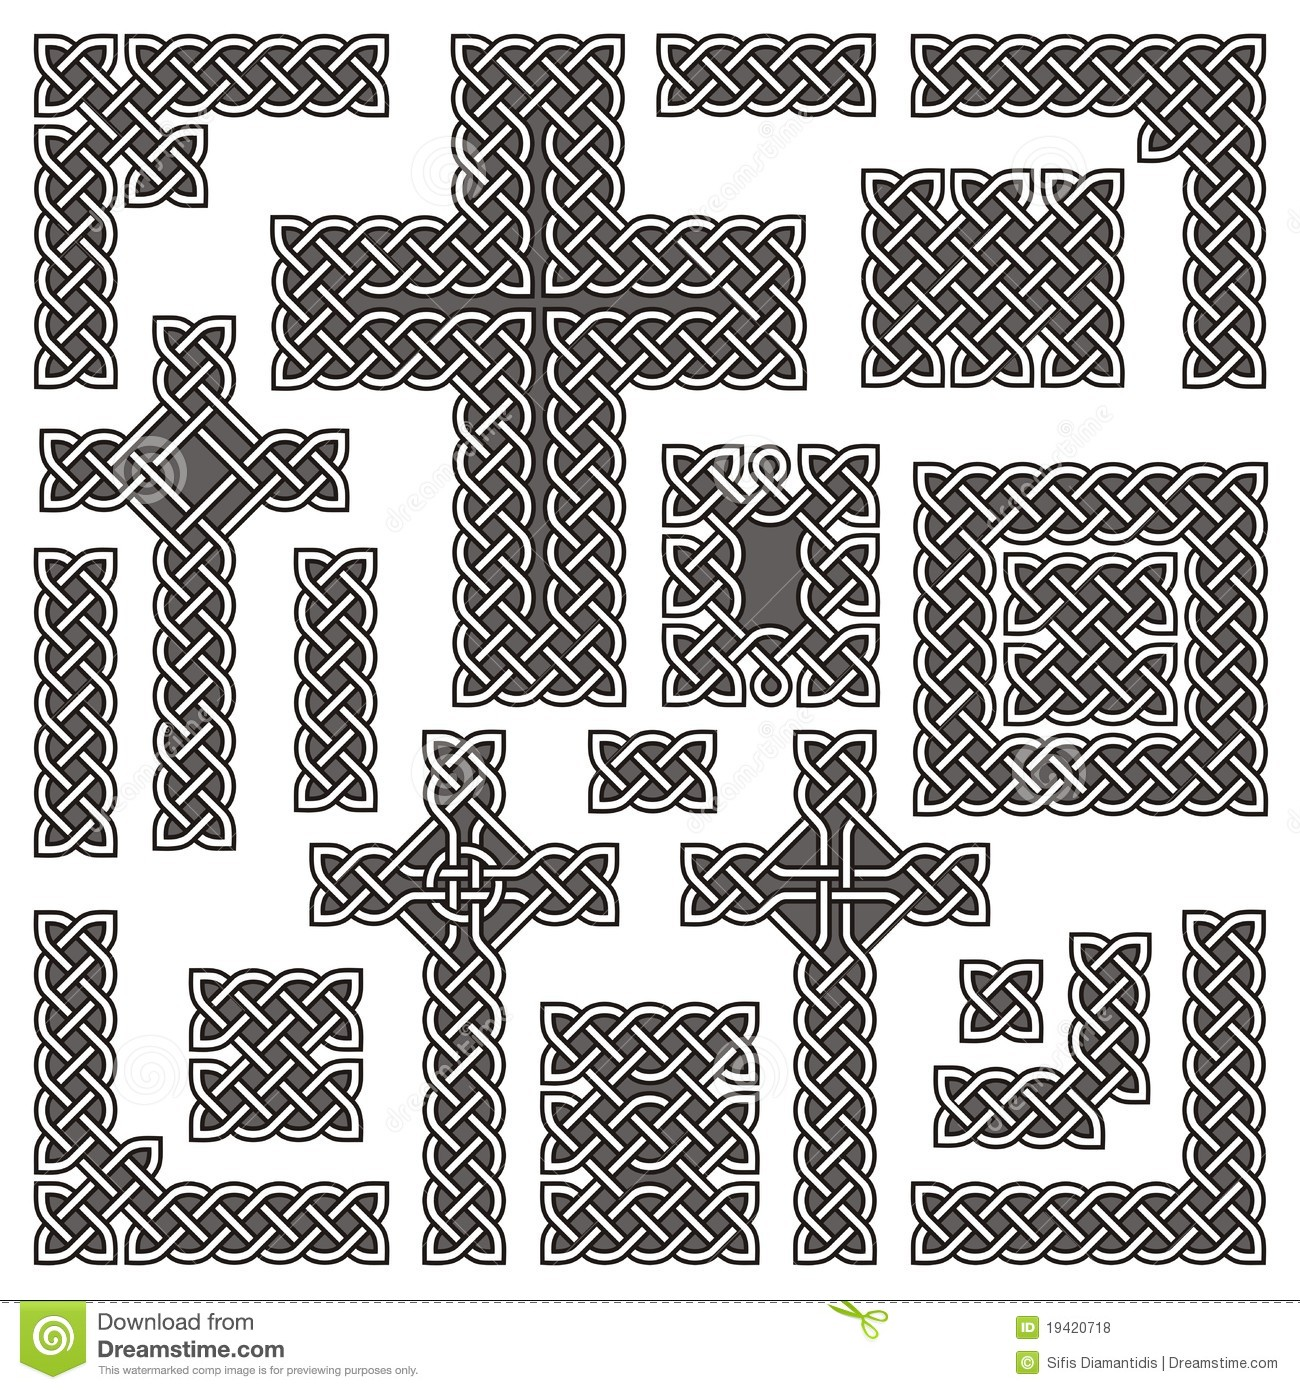 how to draw a celtic knot border